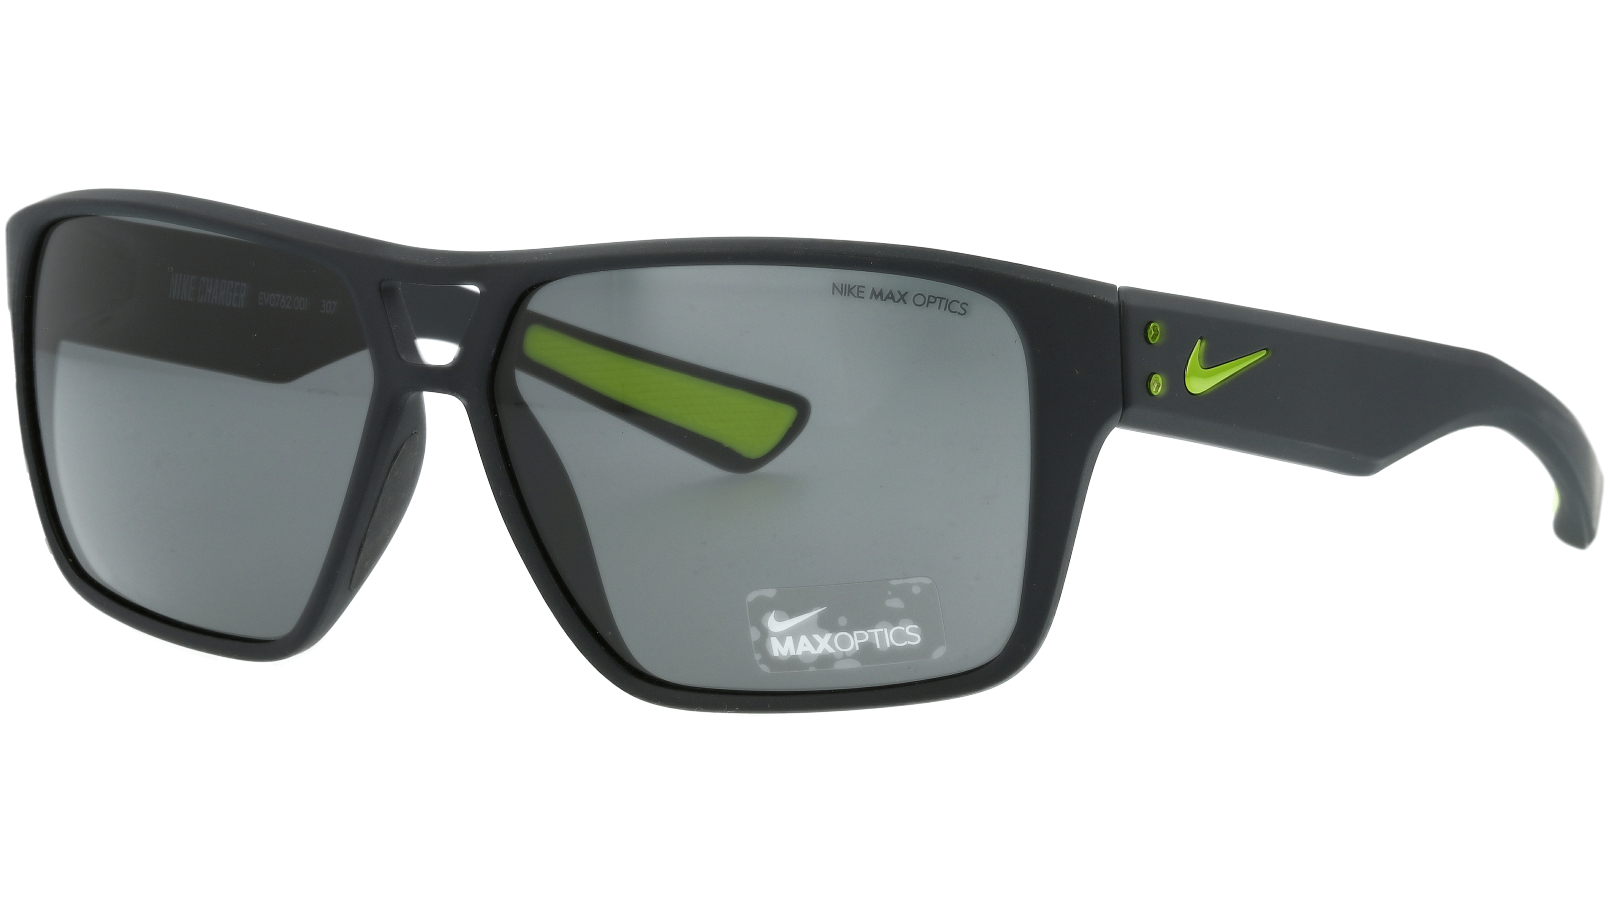 NIKE EV0762 001 59 MATT Sunglasses